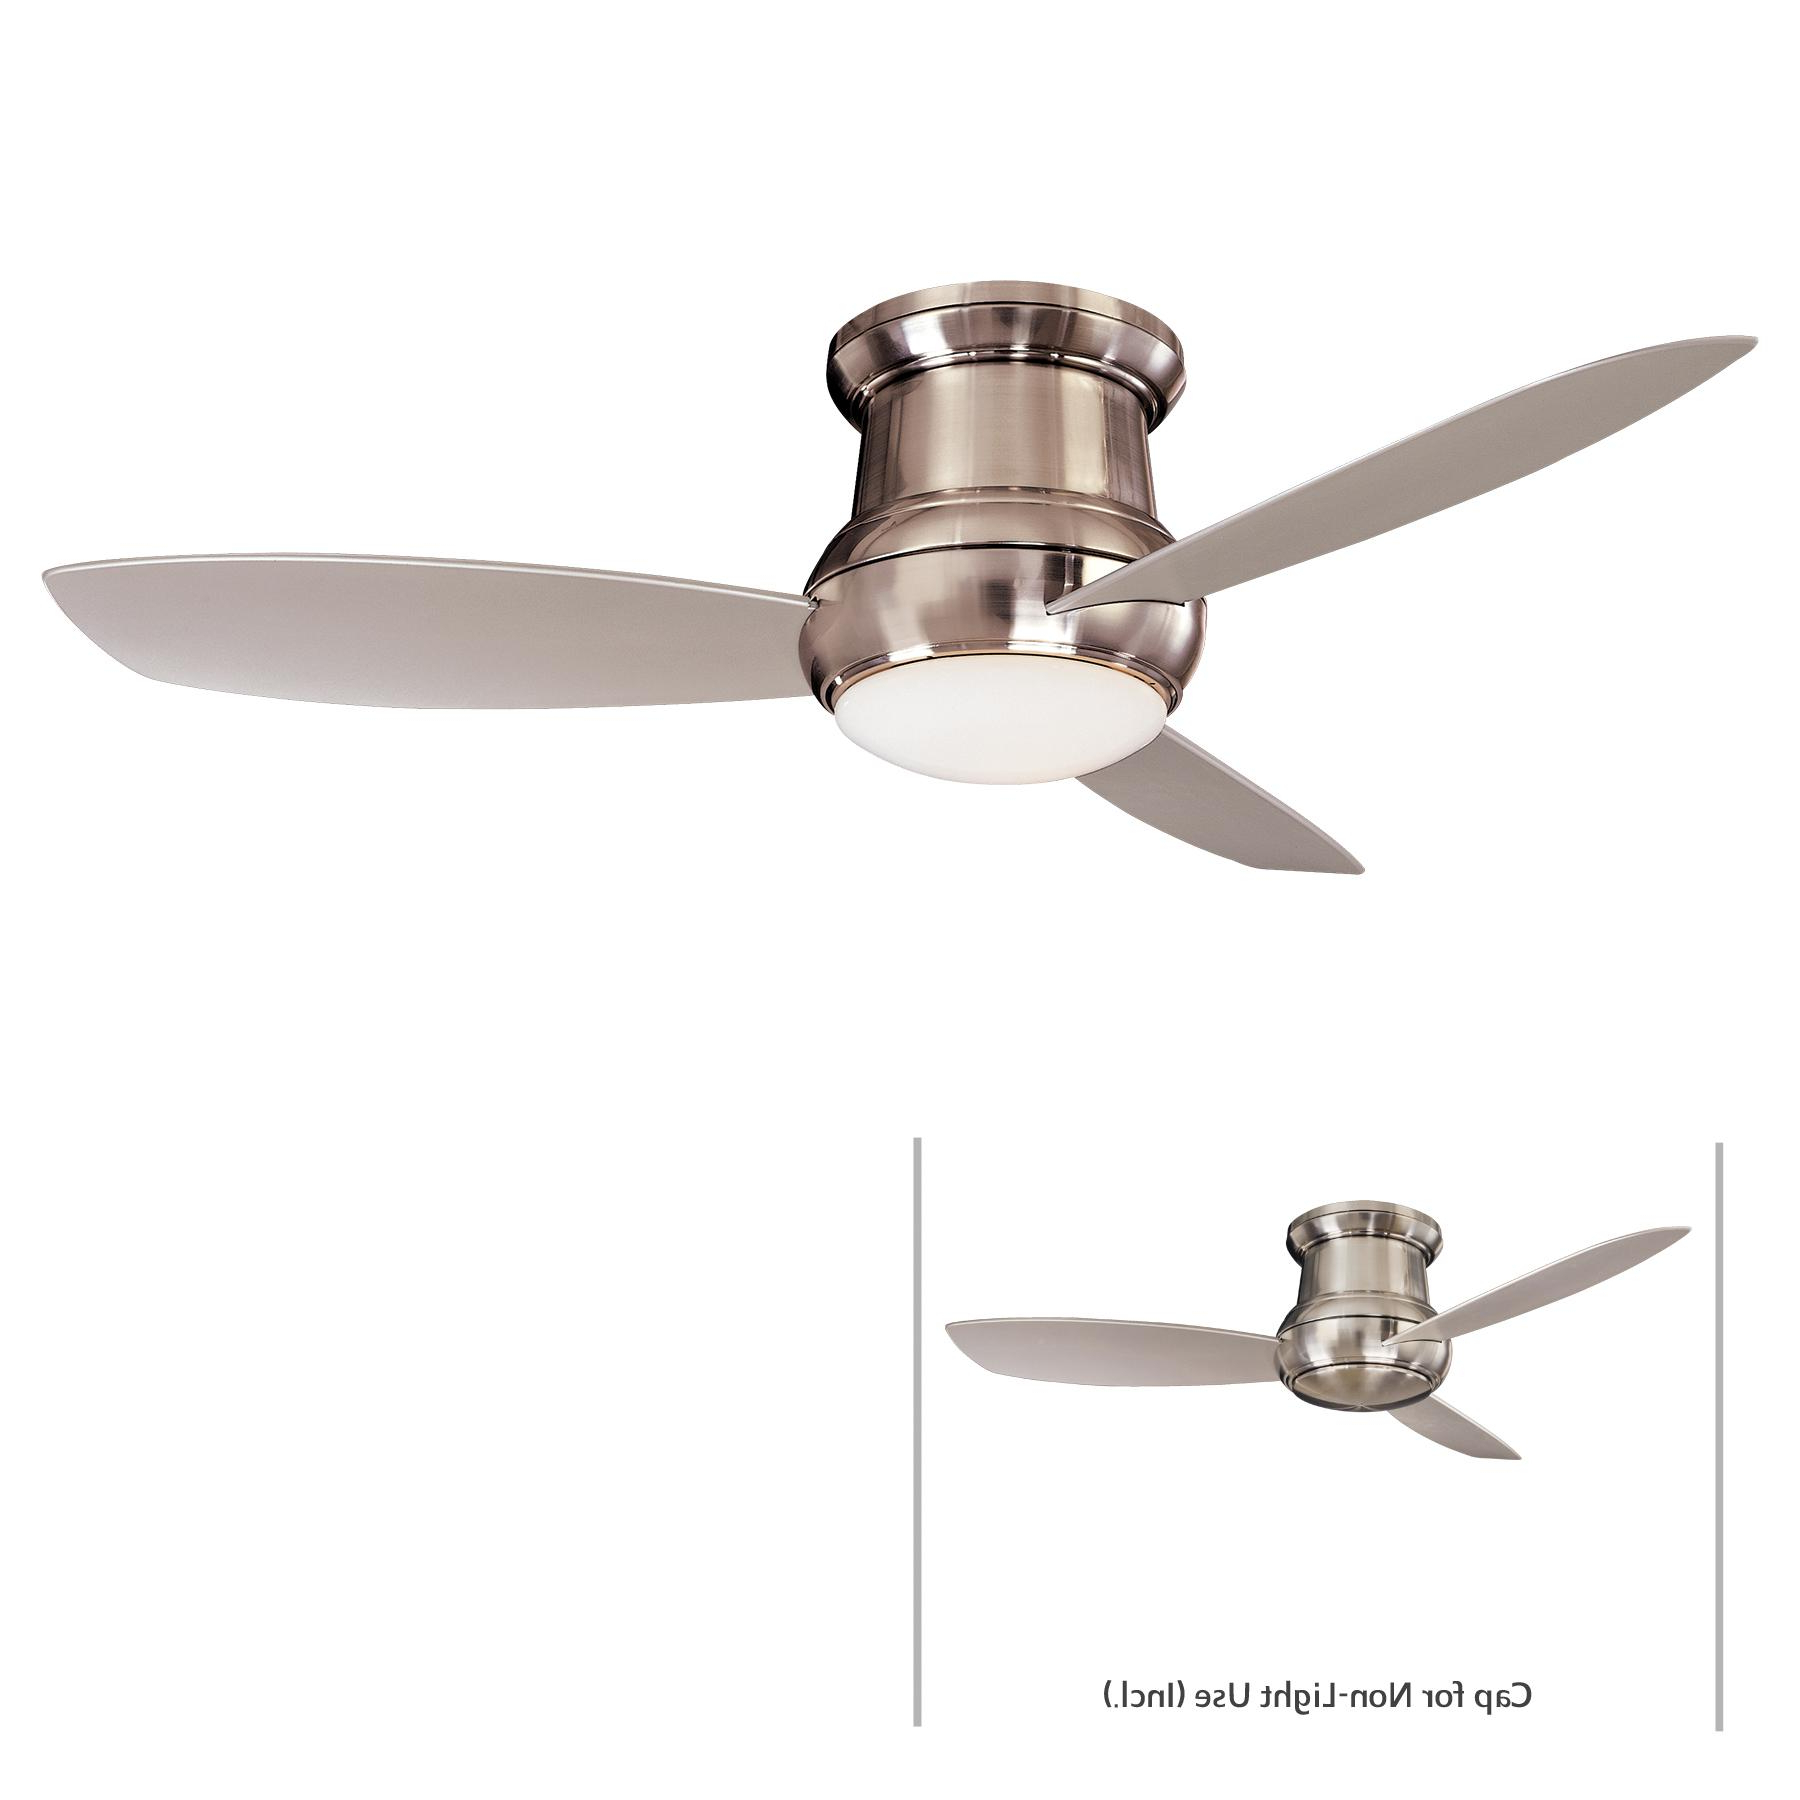 """Details About Minka Aire F474L Bnw 52"""" Led Flush Mount Ceiling Fan Pertaining To Latest Concept Ii 3 Blade Led Ceiling Fans With Remote (View 9 of 20)"""